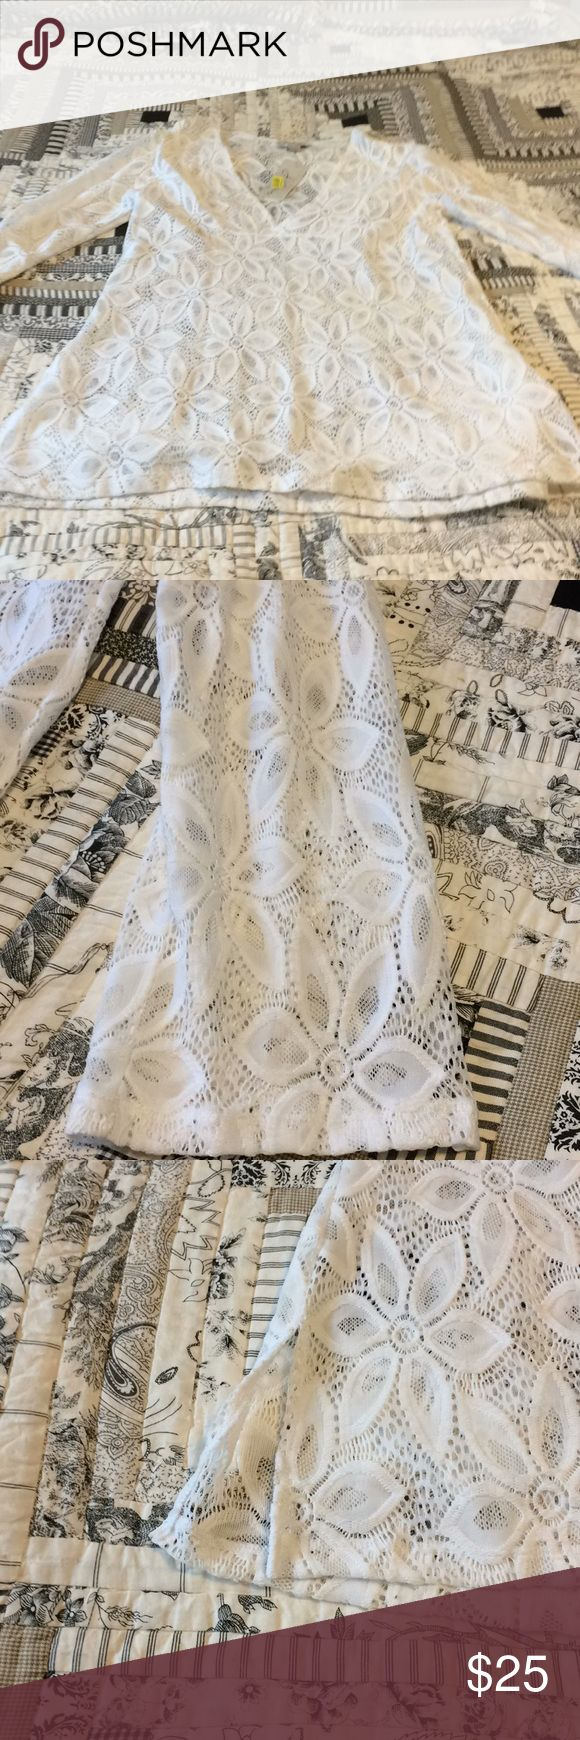 """XL white swimsuit cover-up XL size white lace swimsuit coverup. Bought at Dillards. Never worn.  Smoke free and pet free home  Measurements  35"""" long  22"""" armpit to armpit flat J Valdi Swim Coverups"""